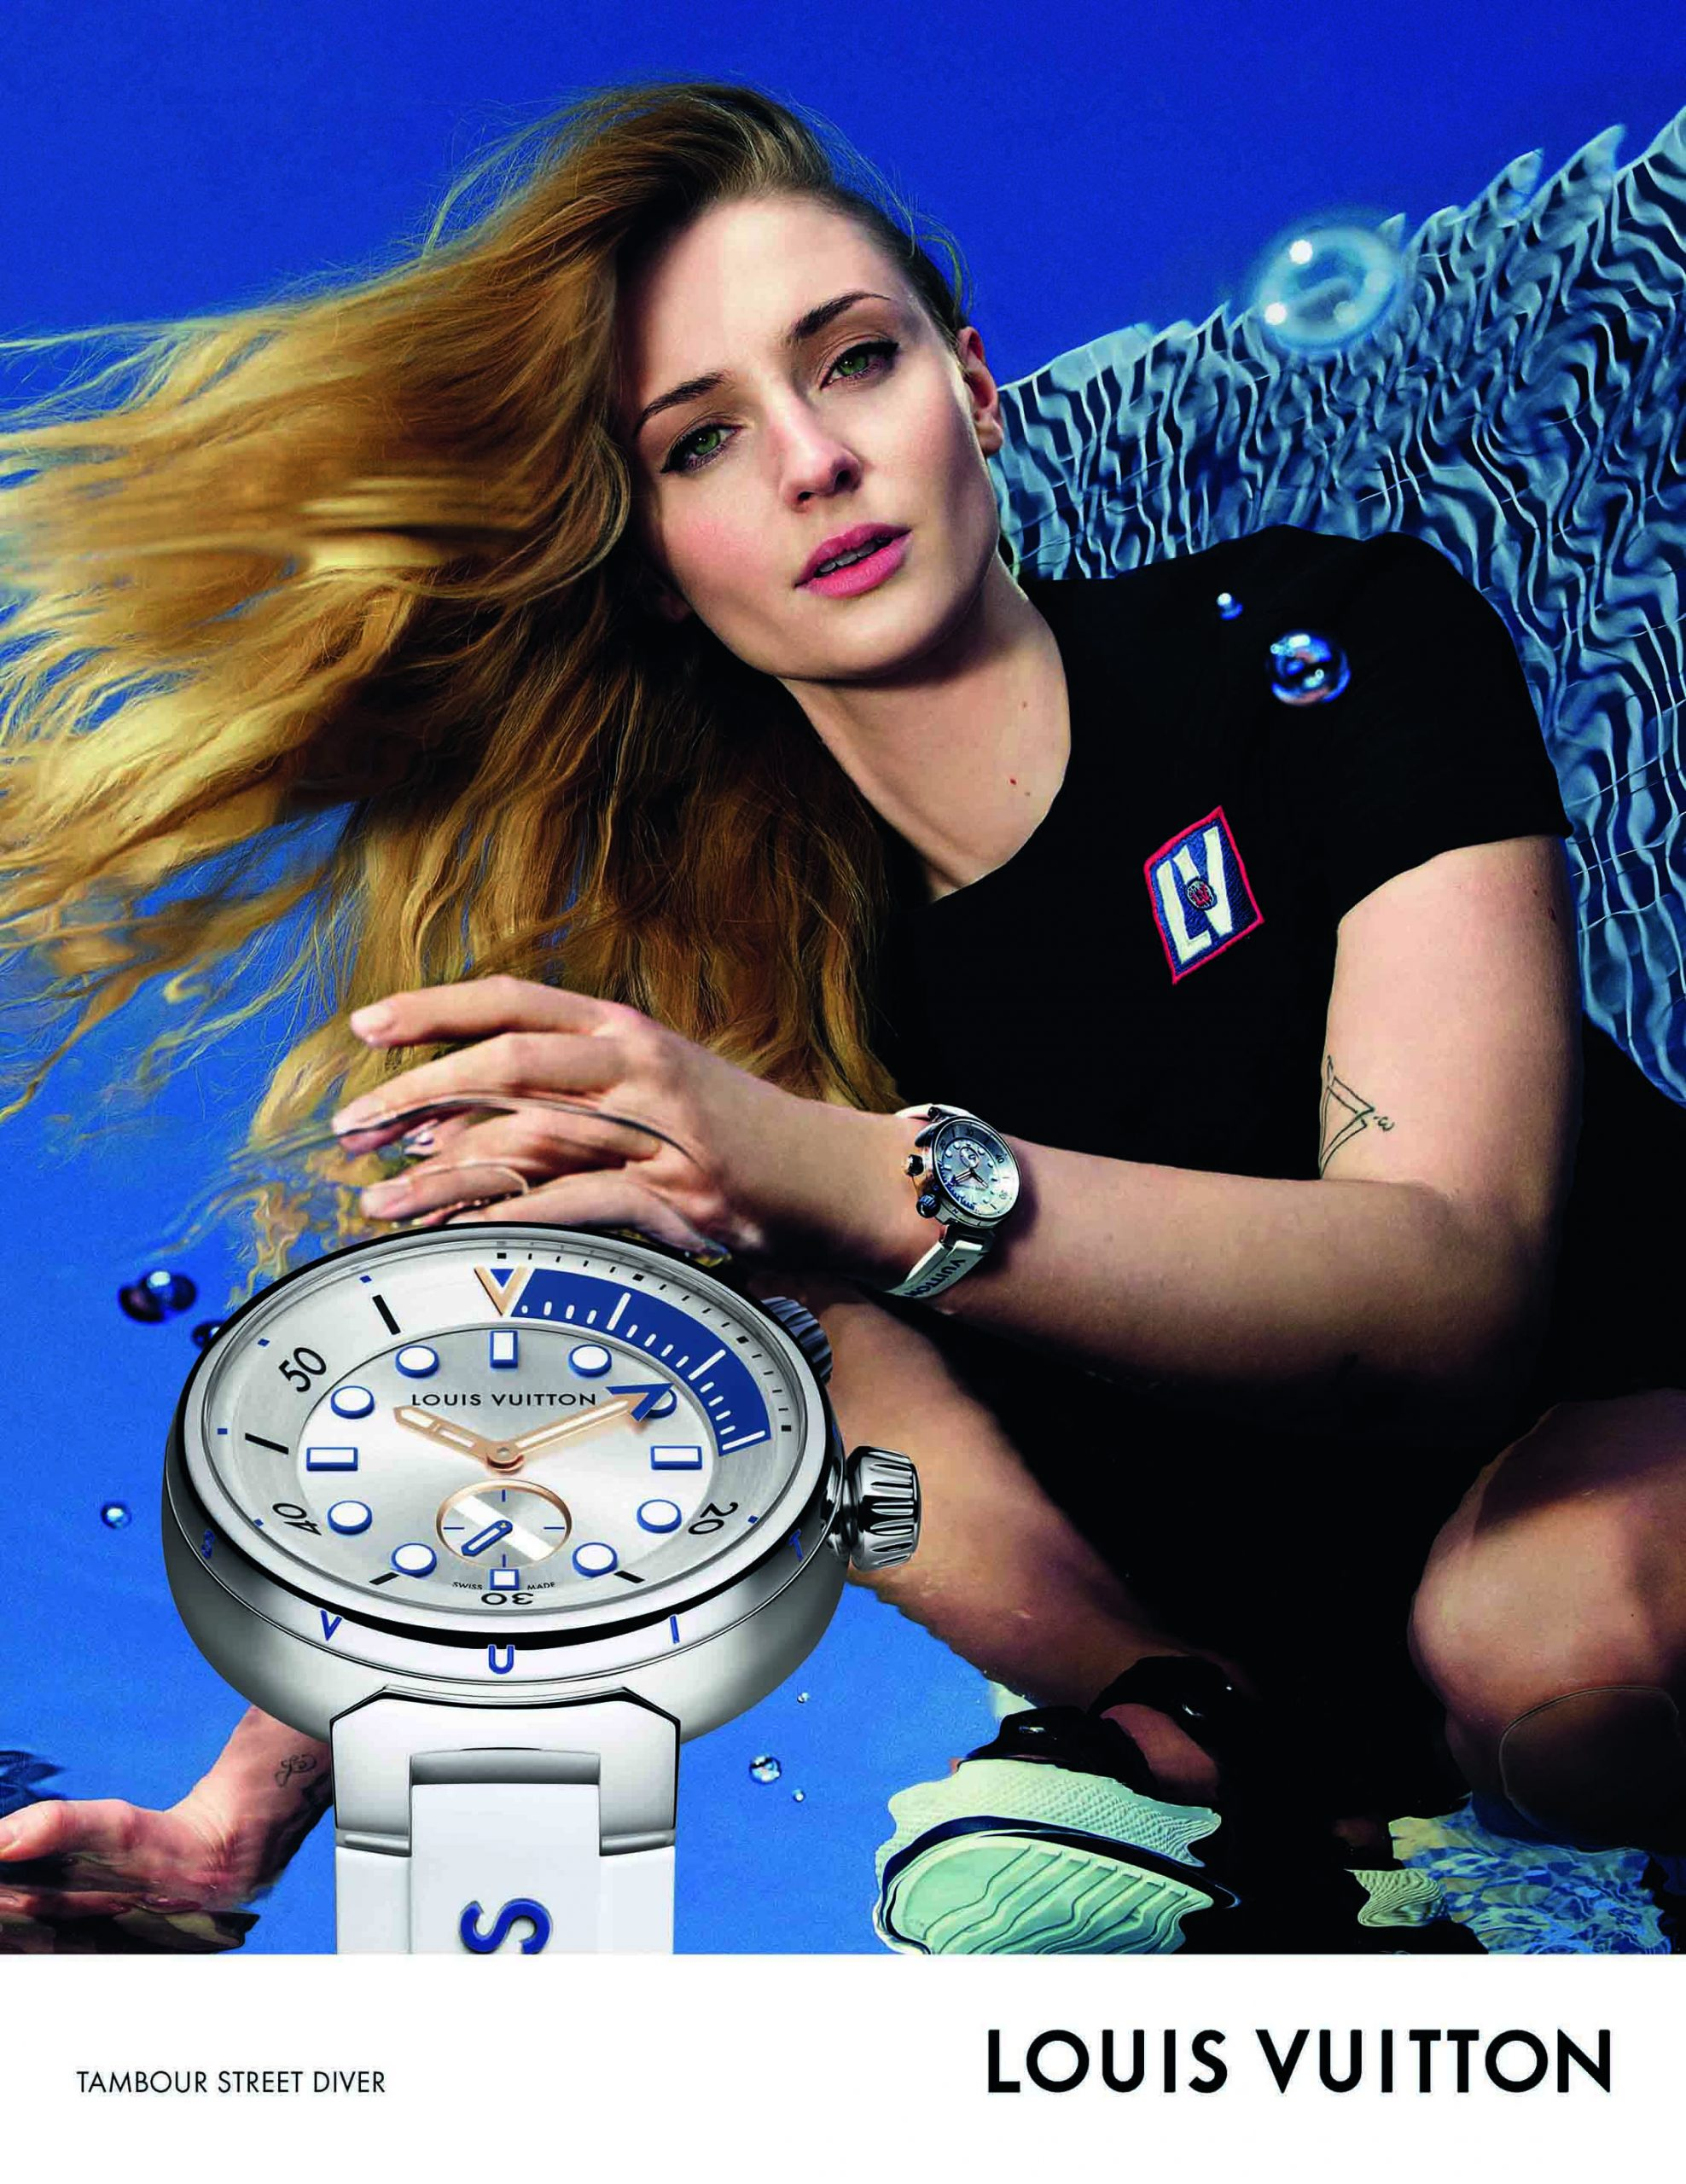 Louis Vuitton Tamour Street Diver Watch Spring 2021 Ad Campaign Photos